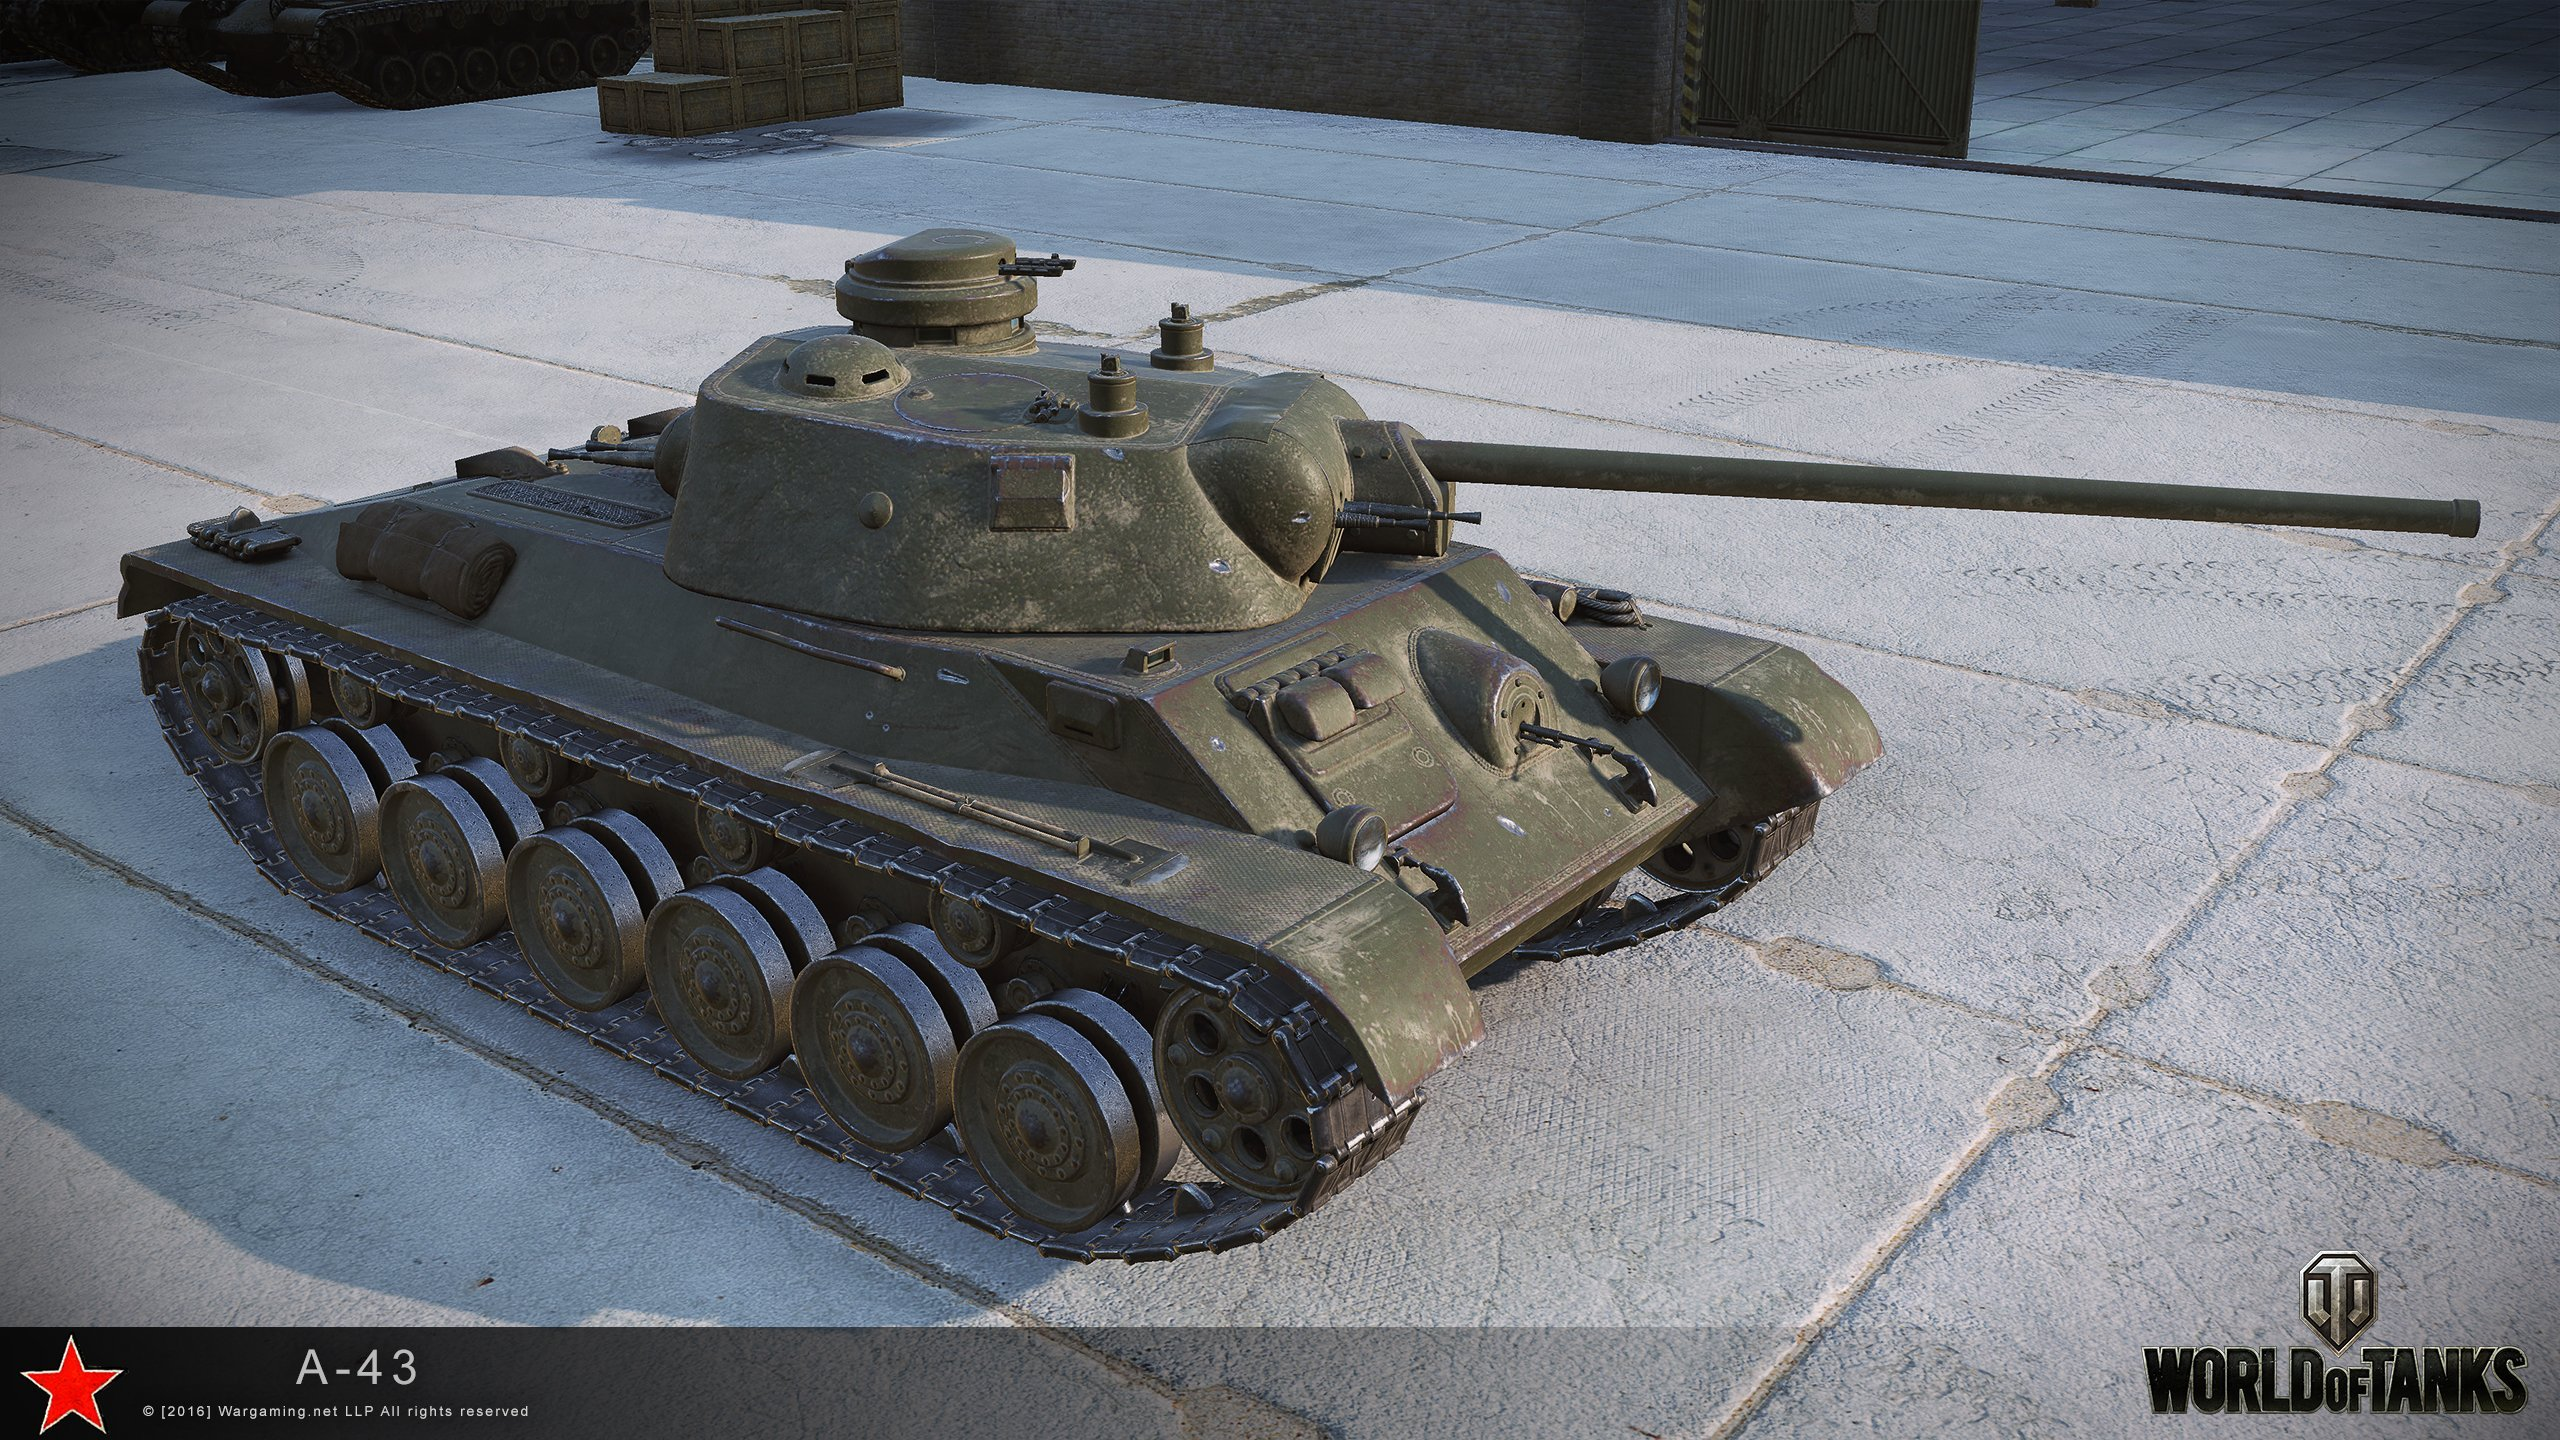 A 43 Wot world of tanks amx 50 foch crusader sp type 5 chi-ri a-43